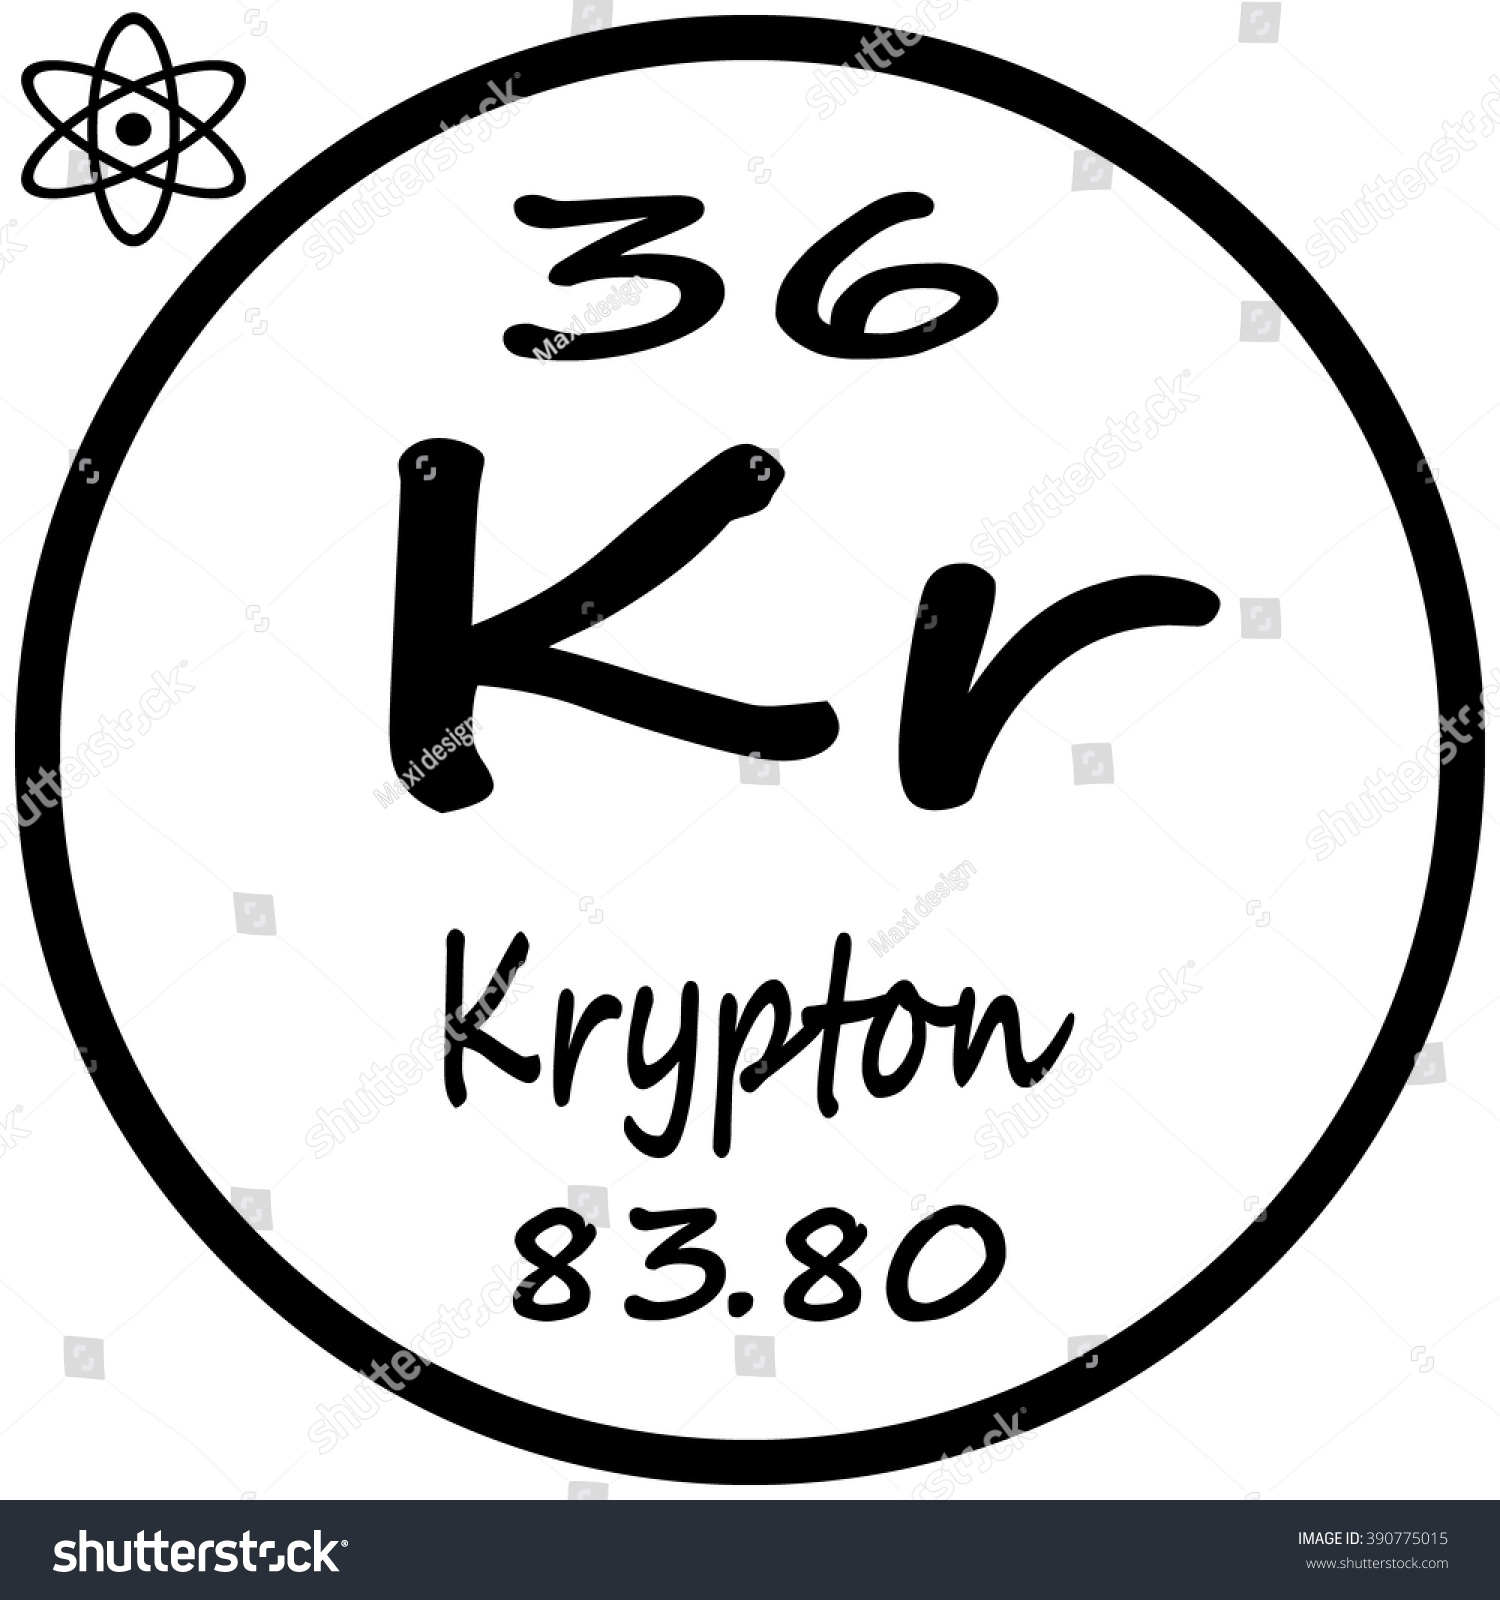 Periodic table for carbon image collections periodic table images chemical elements from carbon to krypton jet flush toilet system periodic table elements krypton stock vector gamestrikefo Gallery